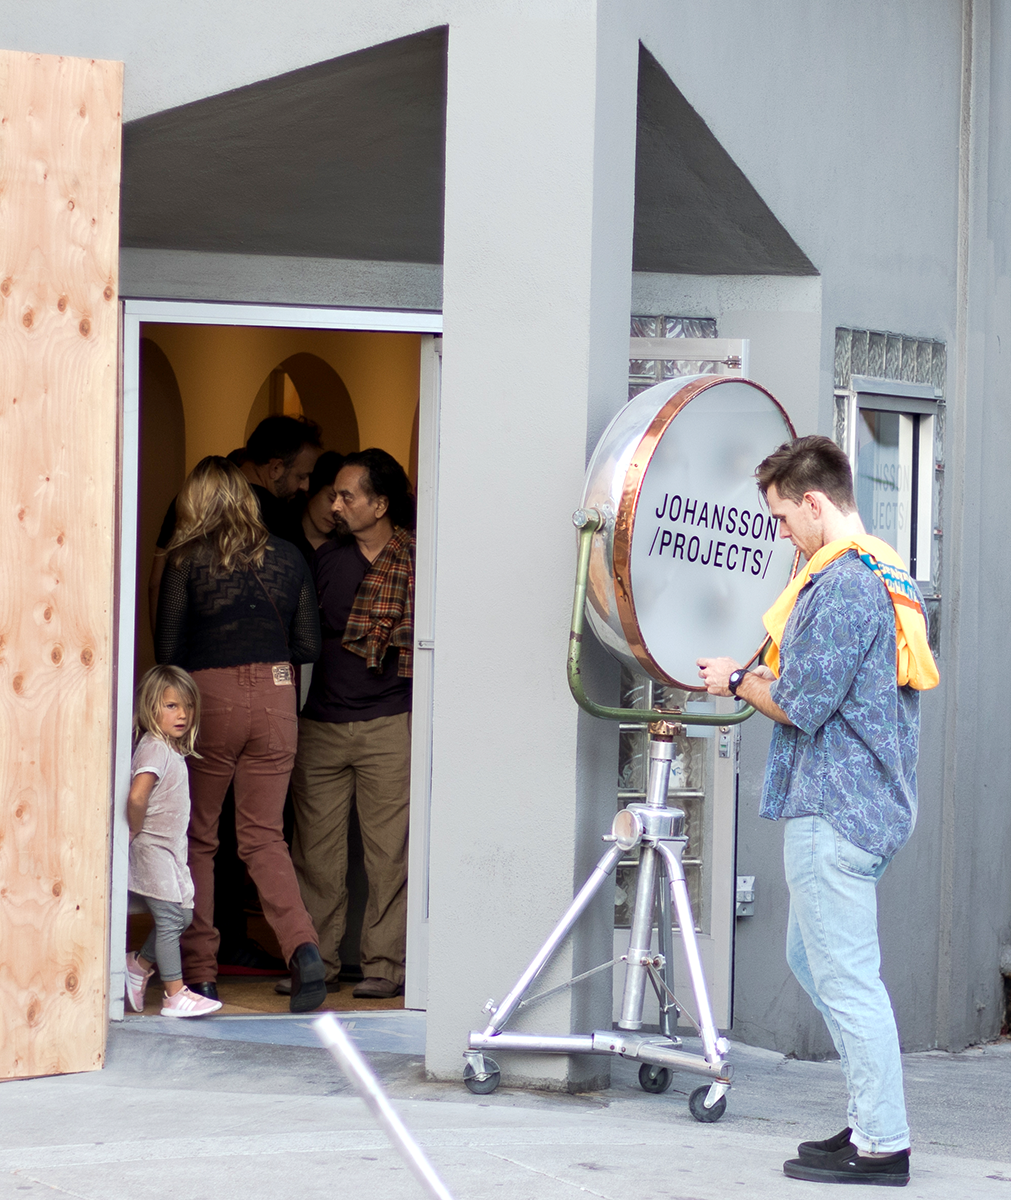 Event+go-ers+of+all+ages+crowd+the+entrance+of+Johansson+Projects%2C+an+art+gallery+participating+in+Oakland+Art+Murmur.